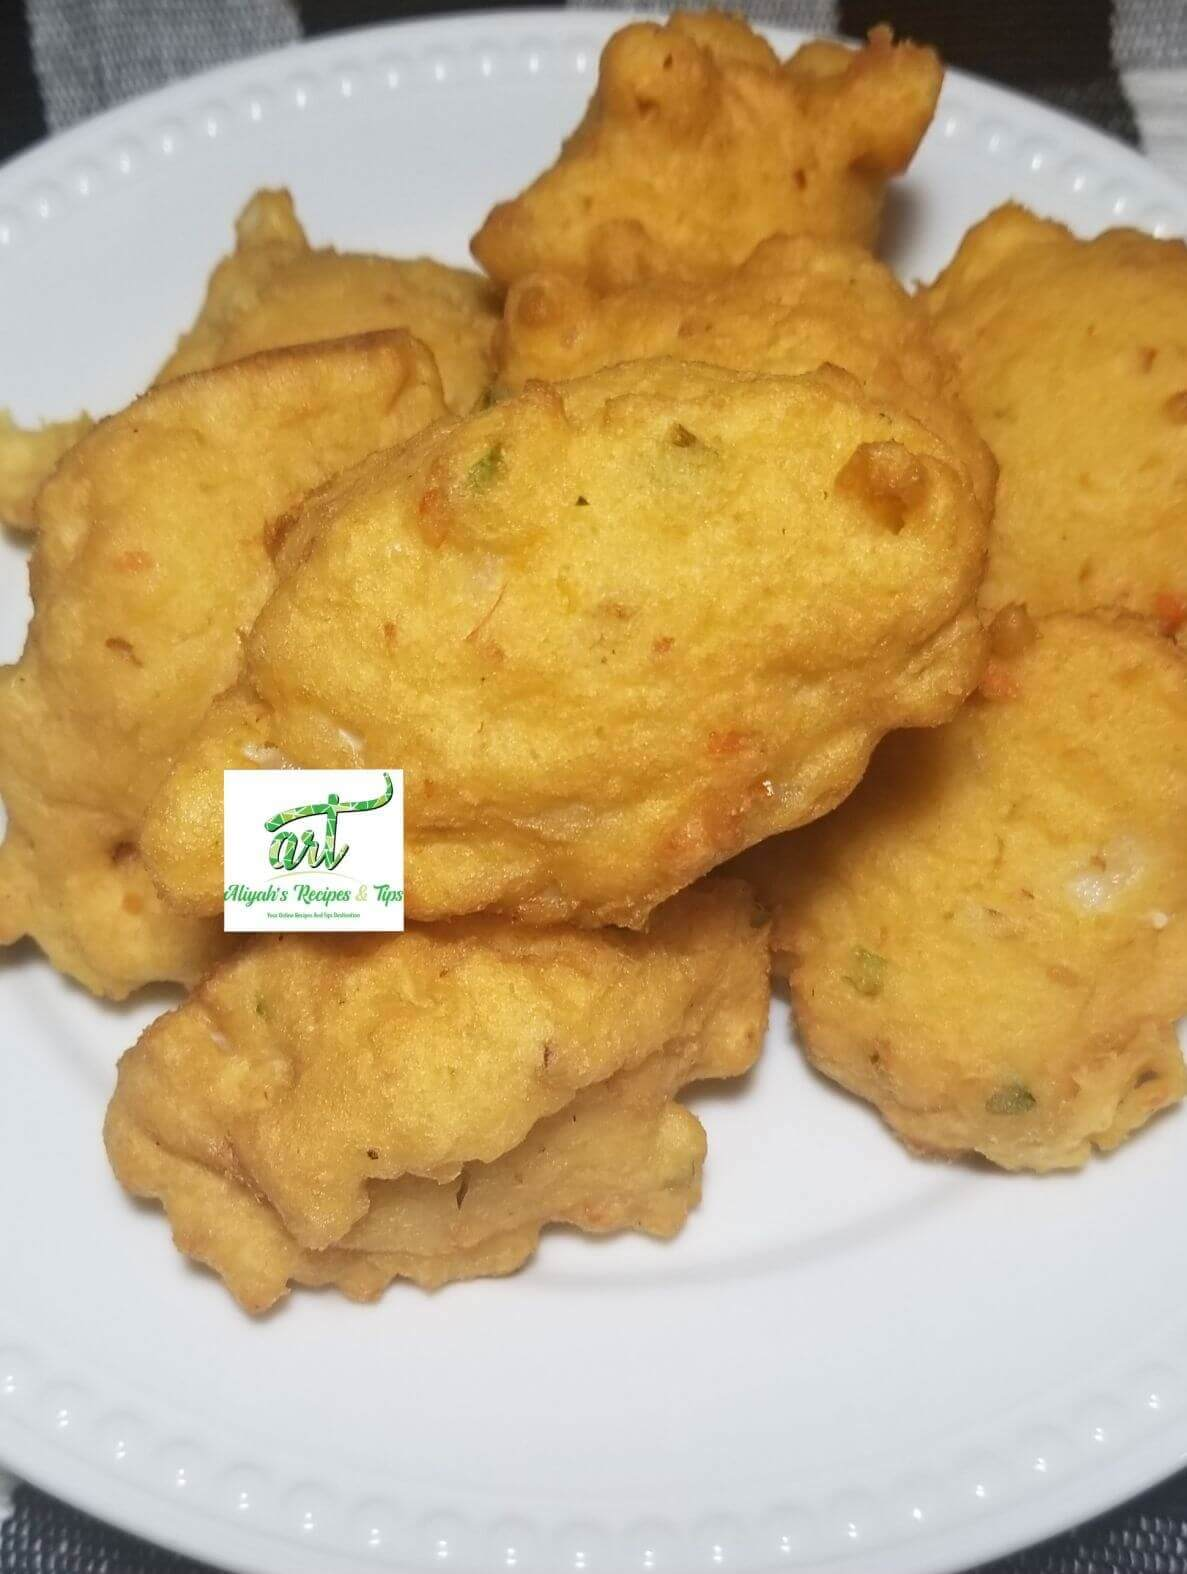 akara, Nigerian, Lady, Bread, Recipe, Frying, Fashion, Baked, Custard, Beans cake, fluffy beans cake, akara osu, how to make Akara, How to make beans fritters, African, Nigeria, Nigerian, Yoruba akara, Ghana, Ghanian, Akara recipe, Akara, Black-eyed peas fritters, Acara, Kosa, ground black-eyed peas, Fritters